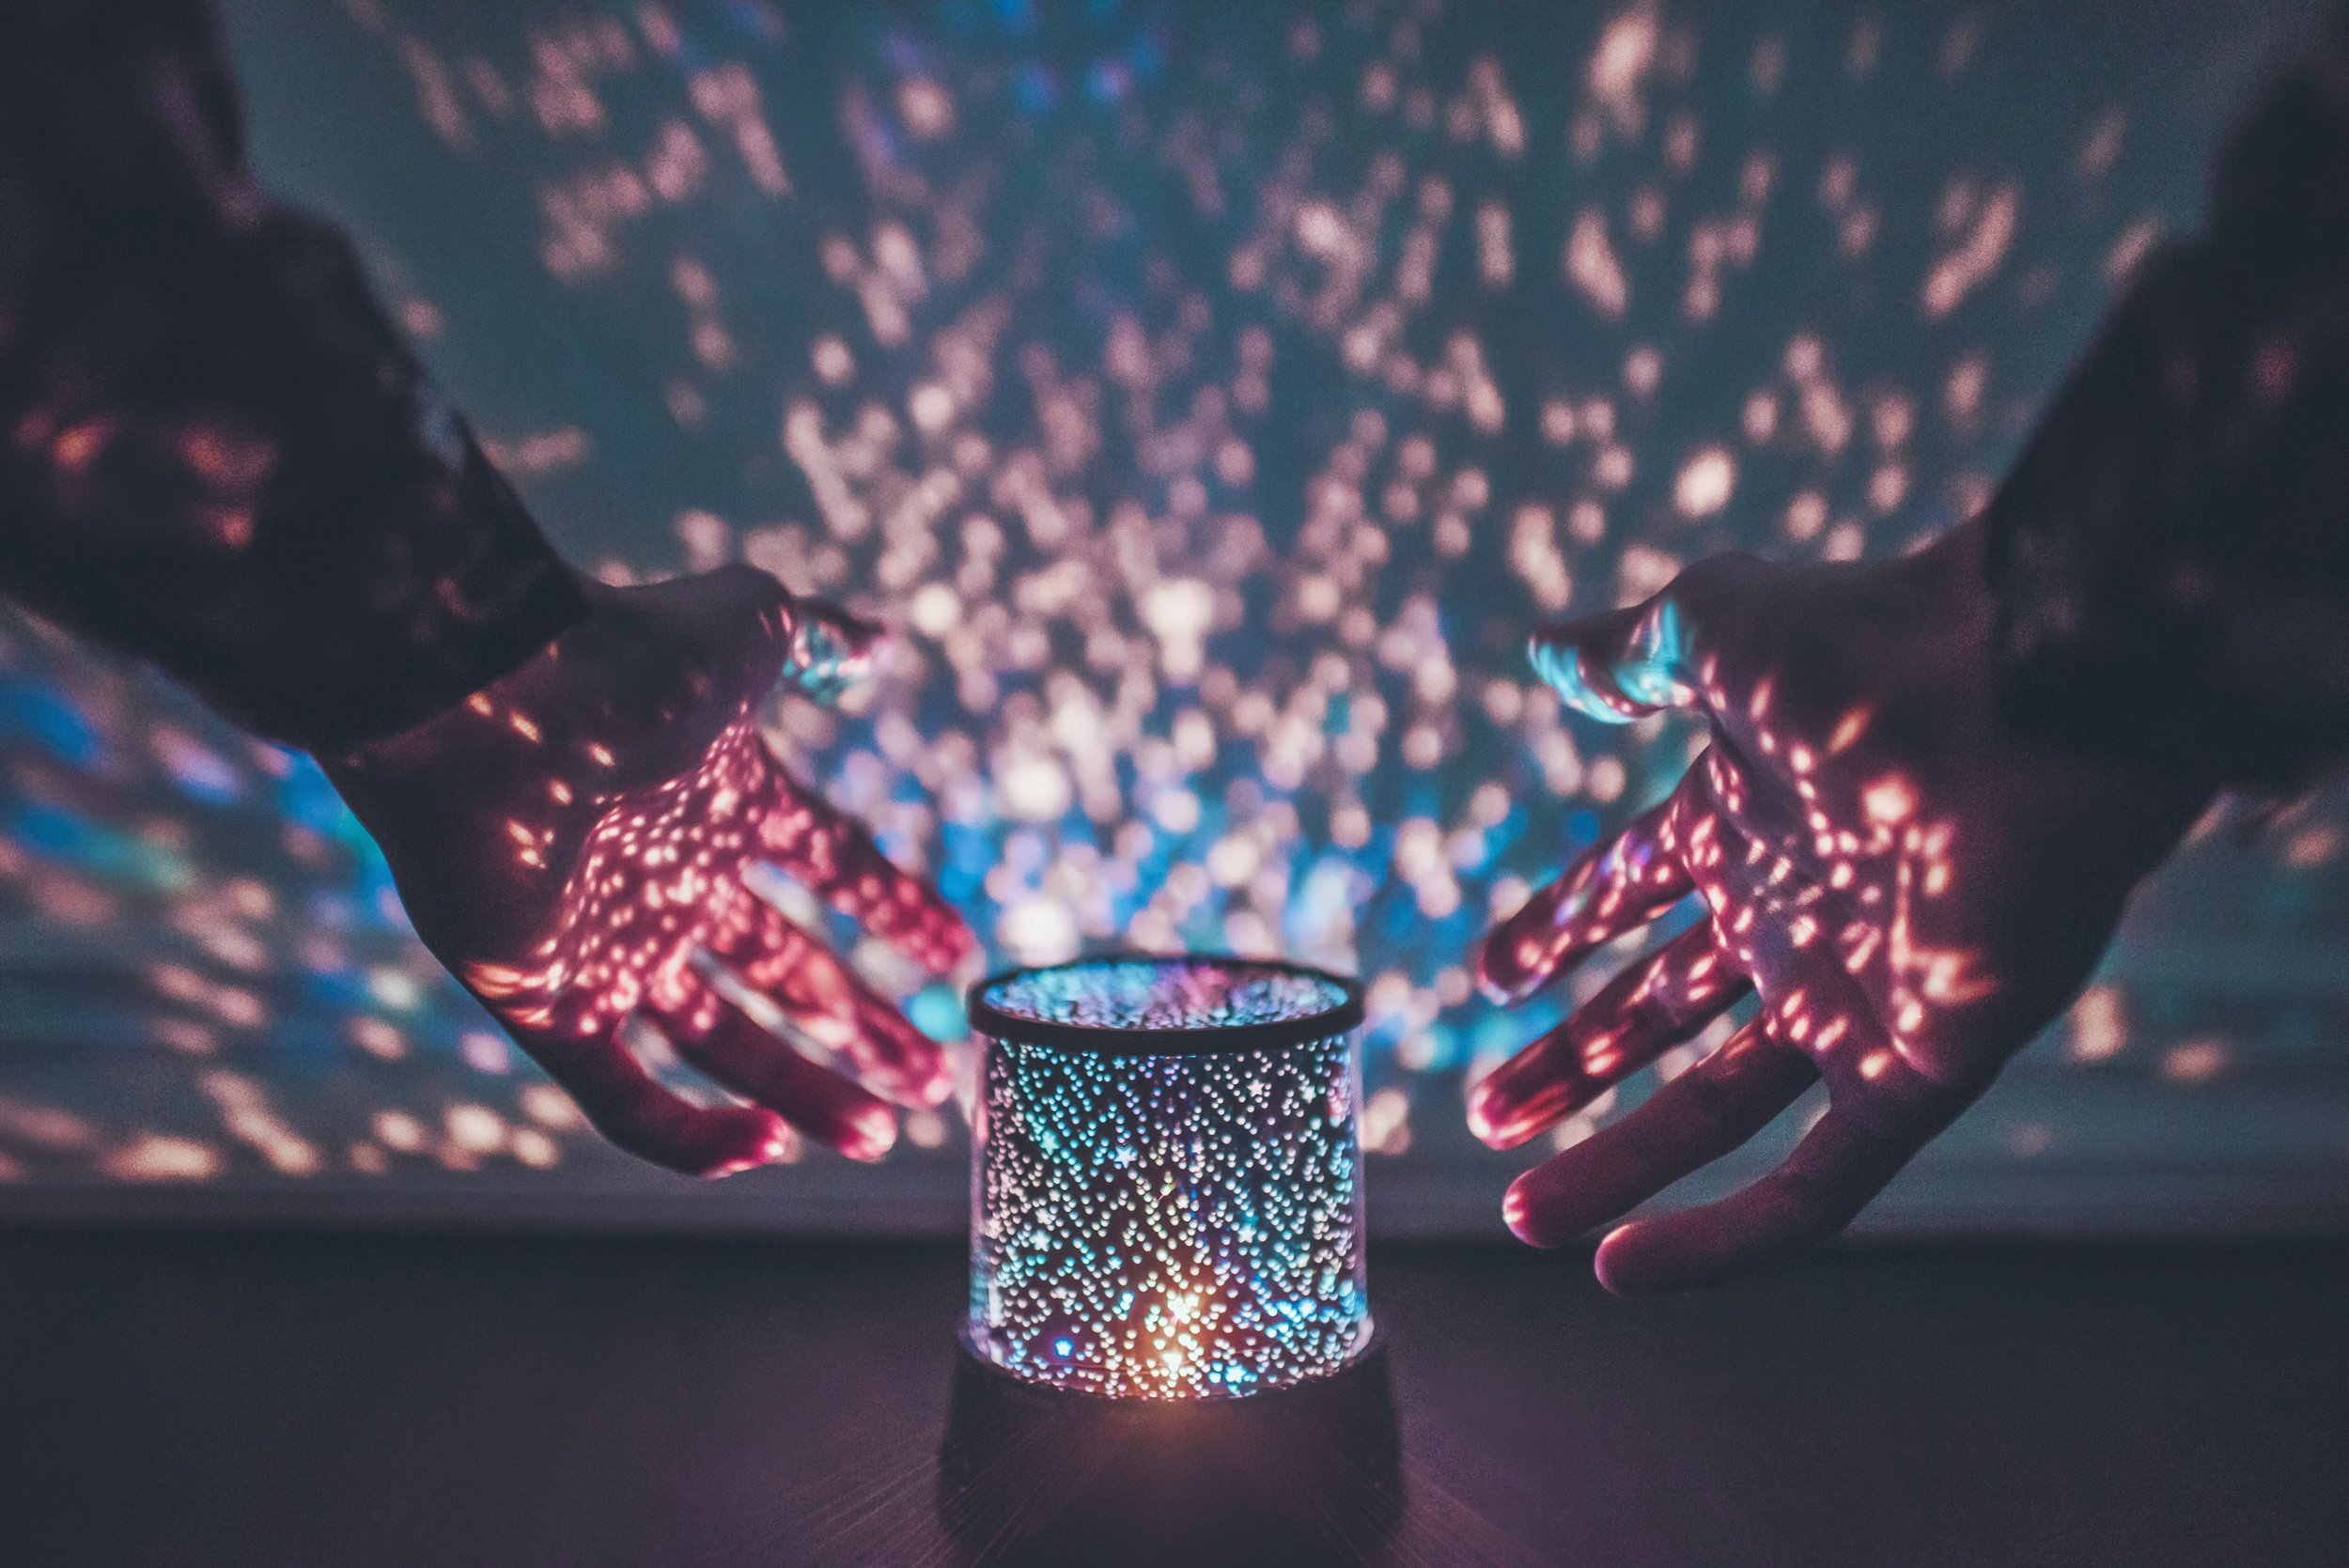 Photography Brandon Woelfel